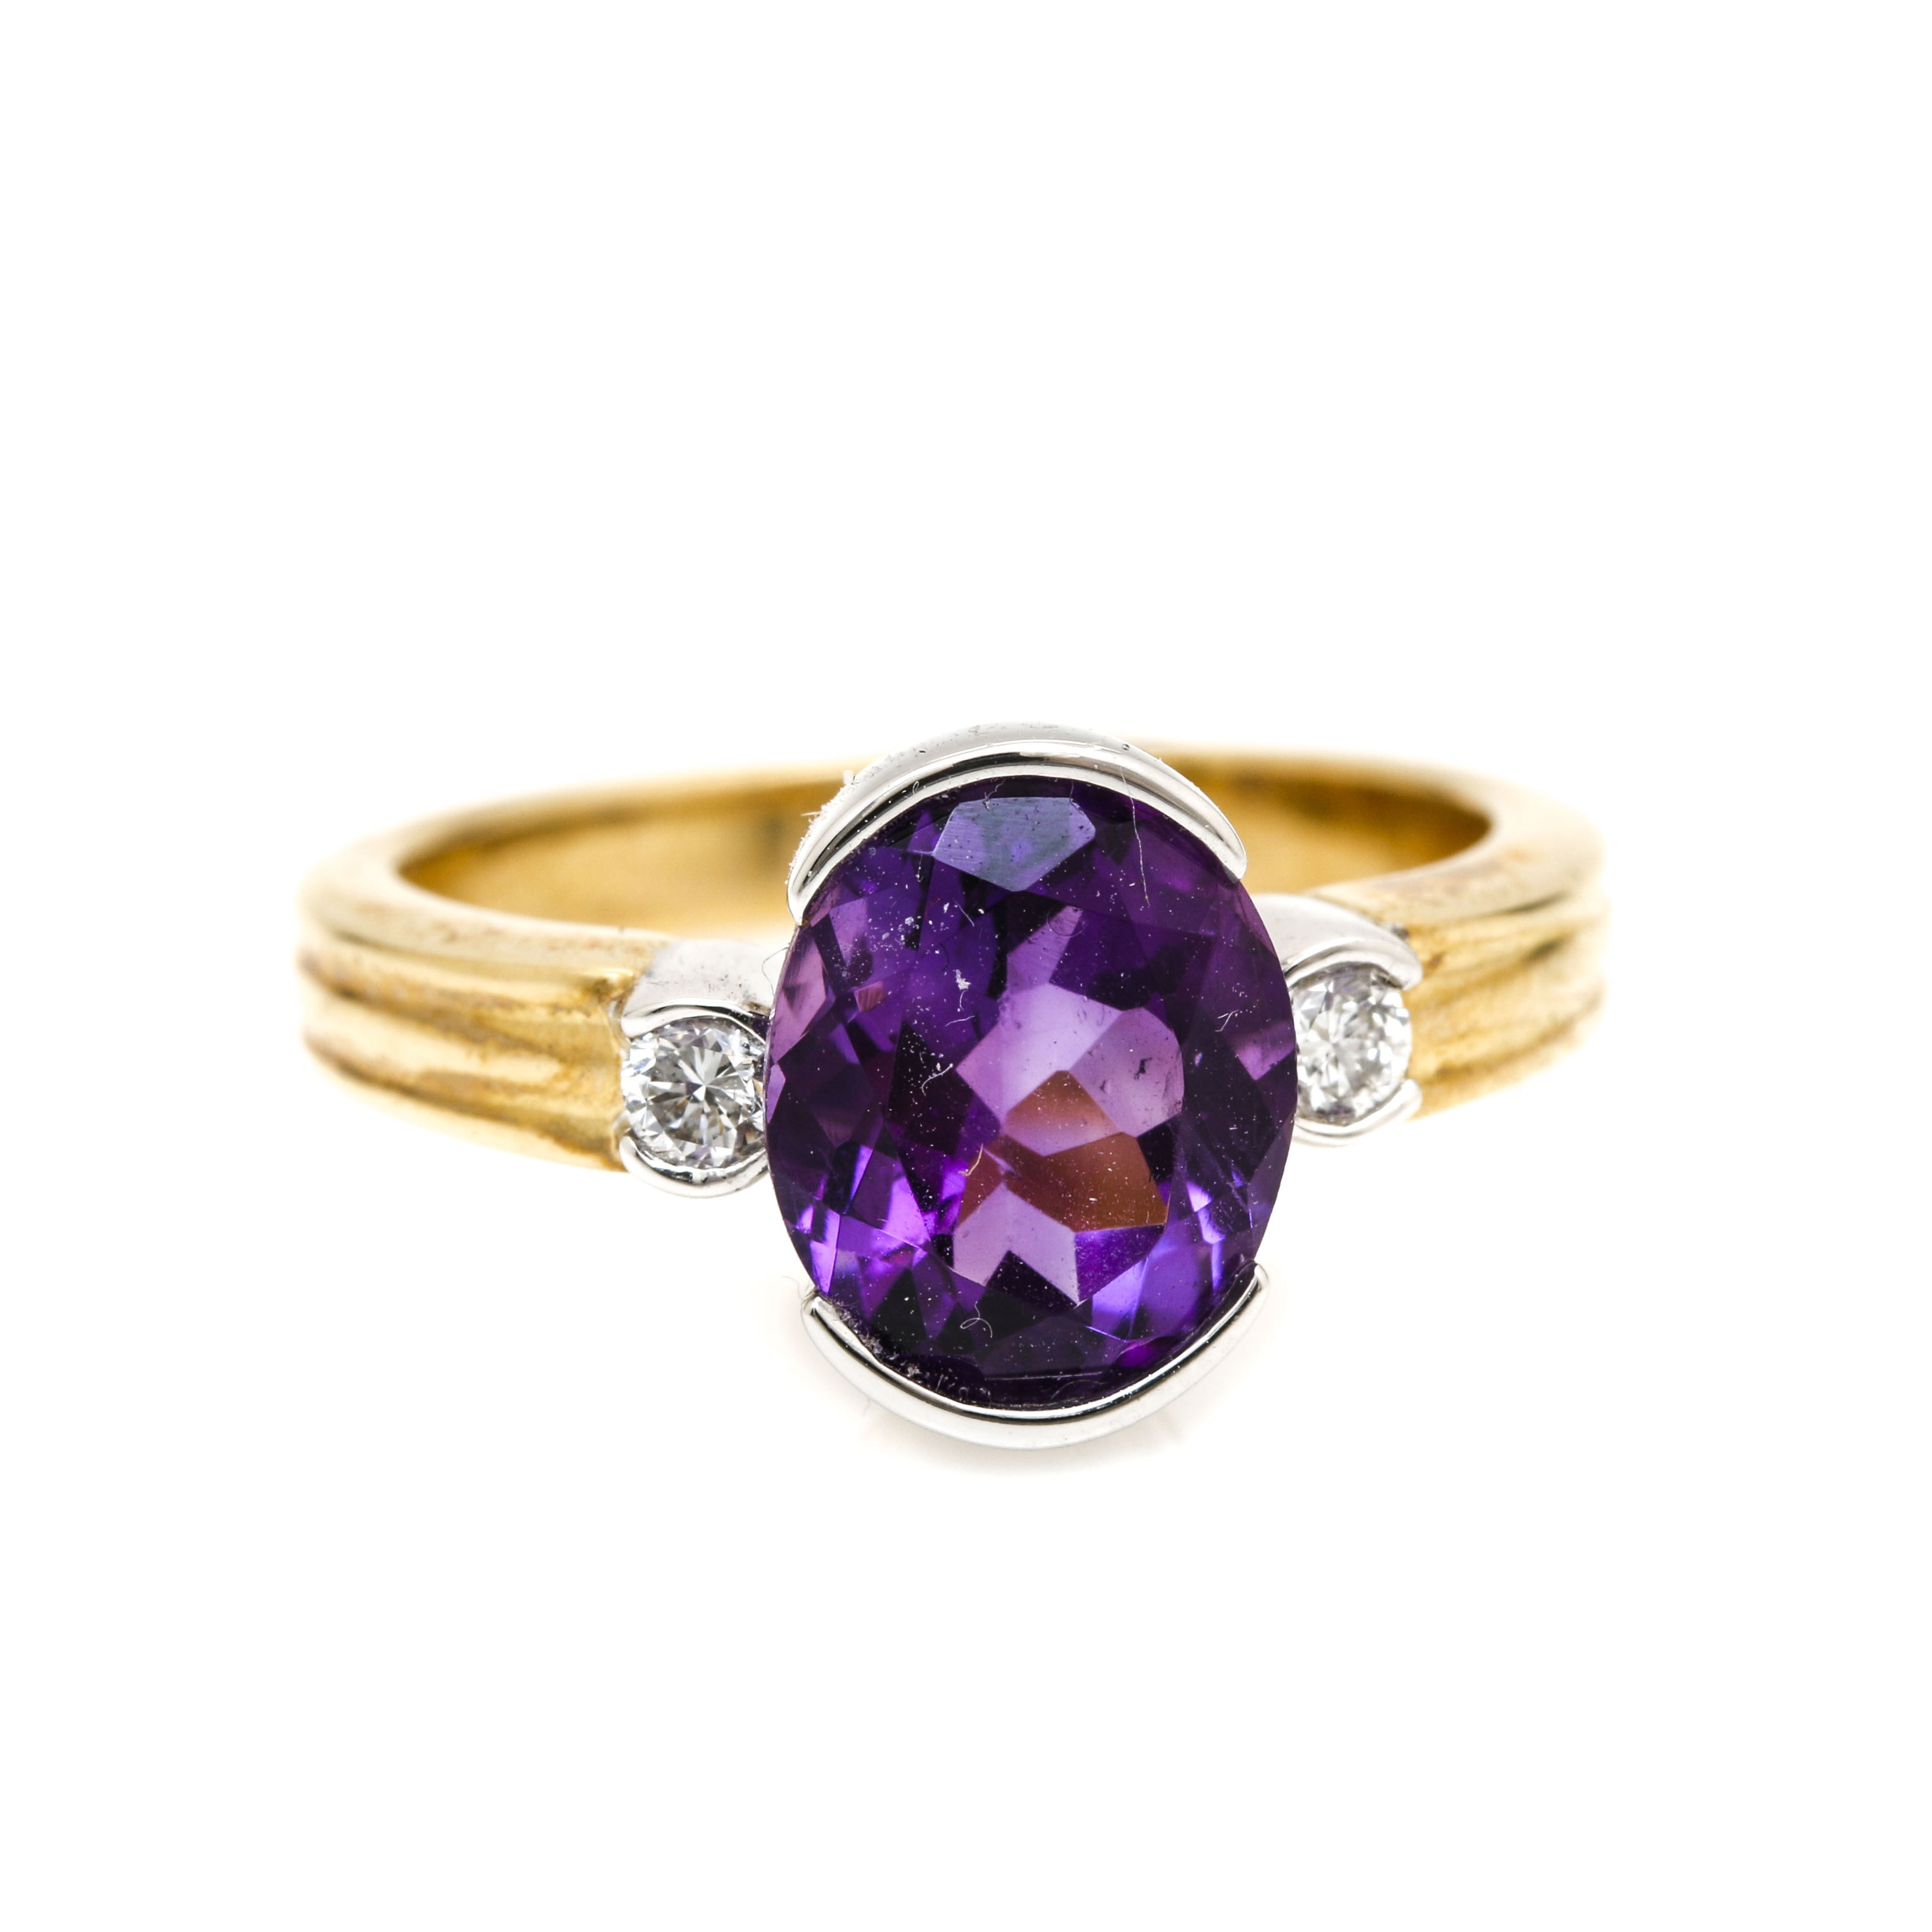 14K Two Tone Gold 2.19 CT Amethyst and Diamond Ring